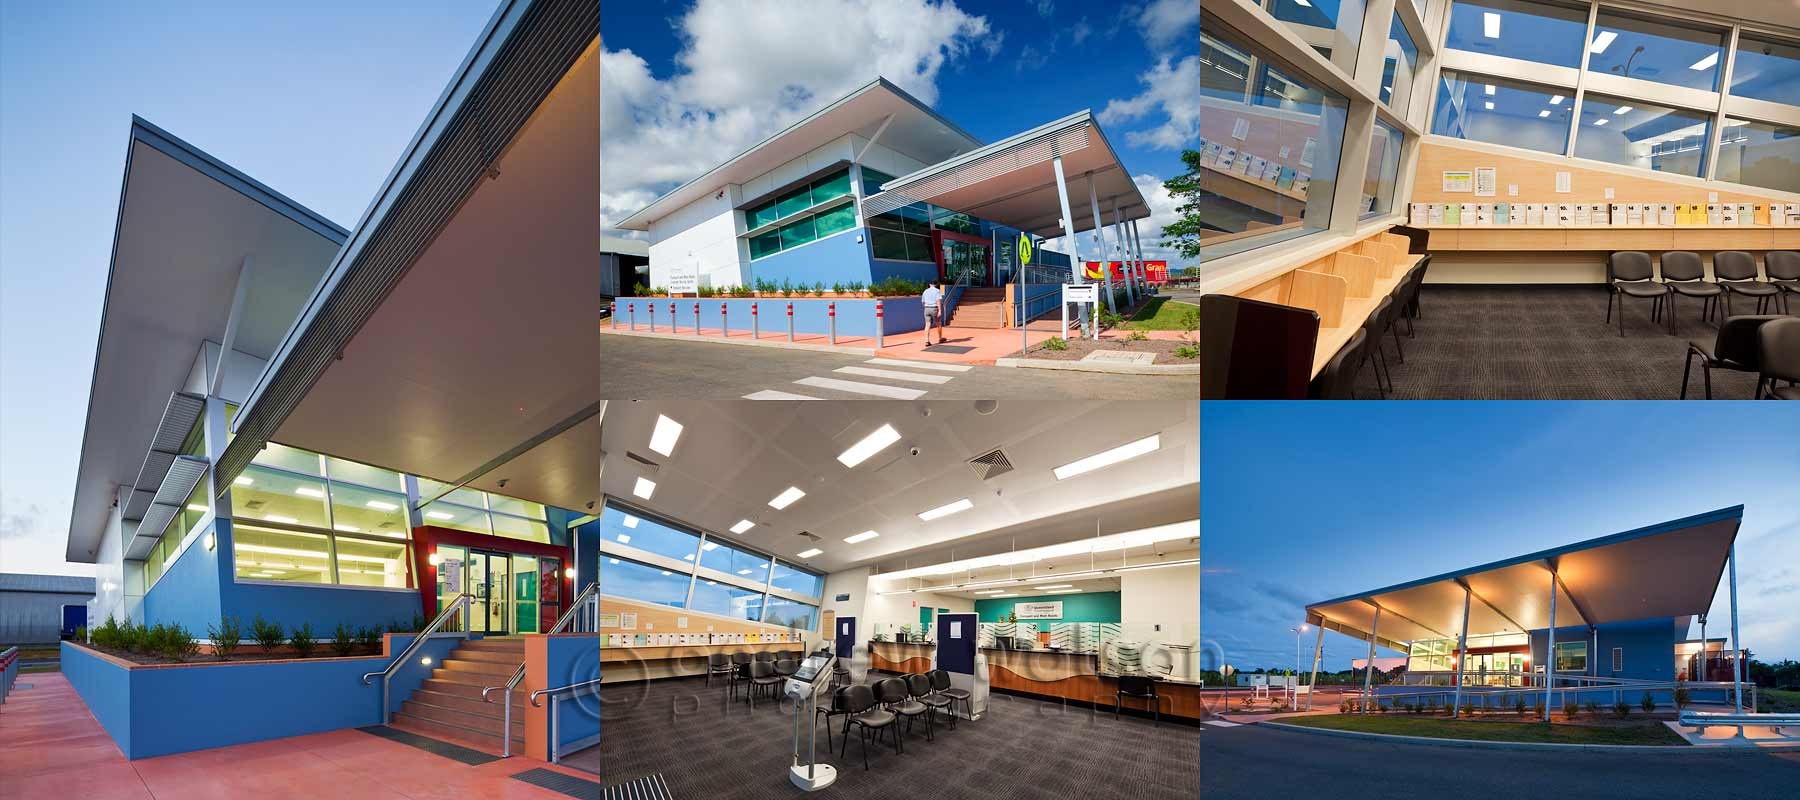 Architectural photography - Innisfail Dept. of Transport Customer Service Centre